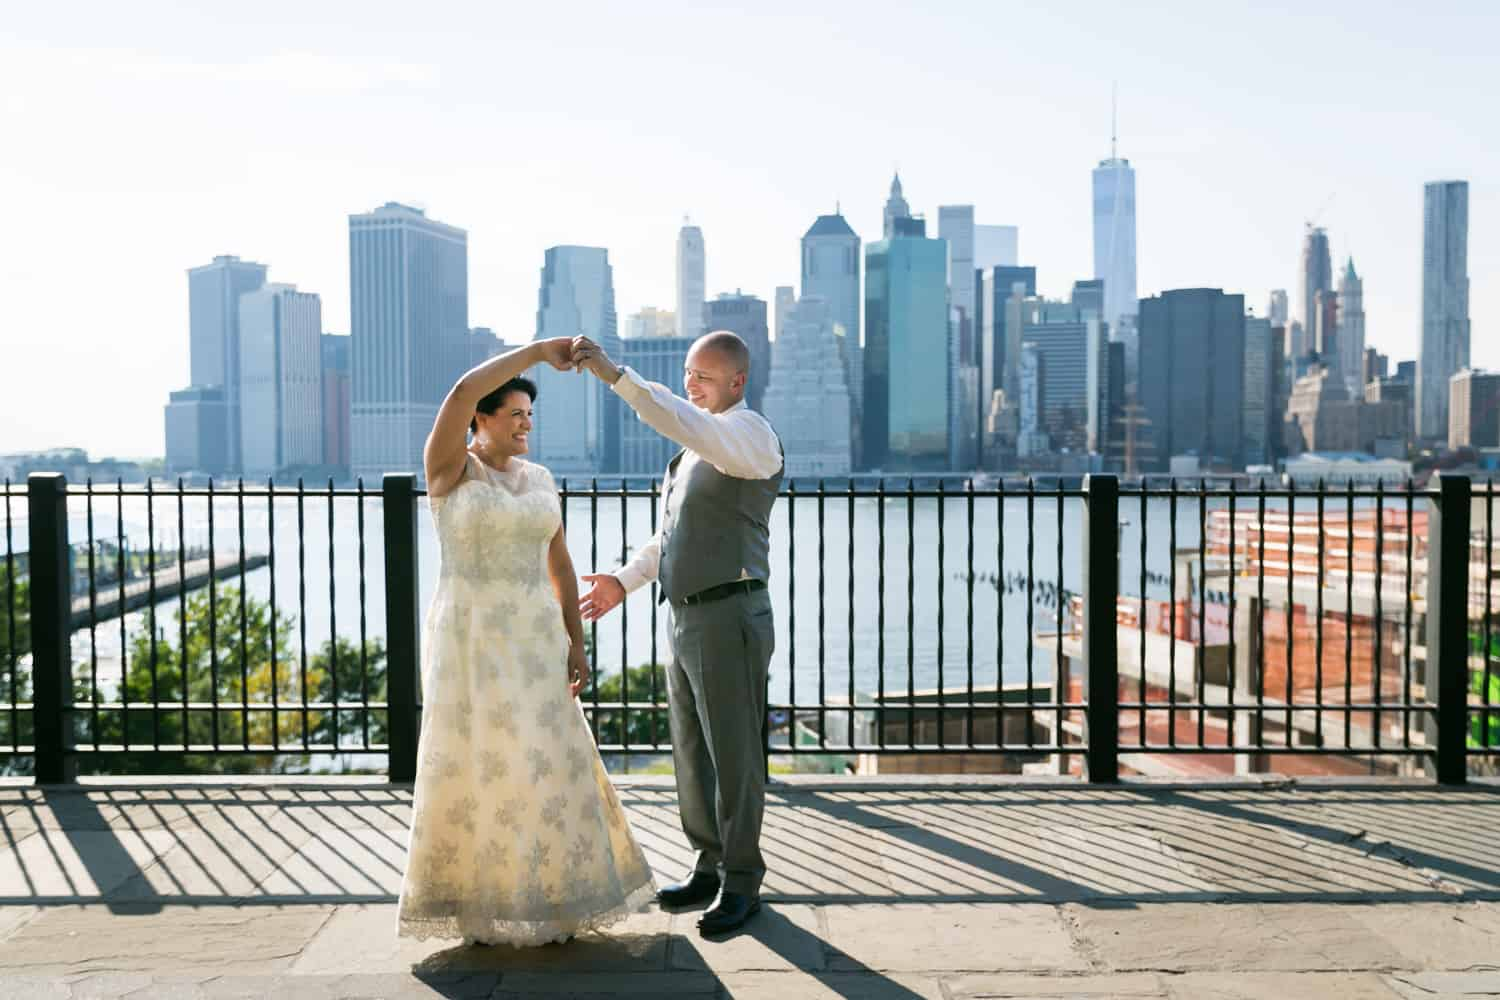 Bride and groom dancing on Brooklyn Promenade